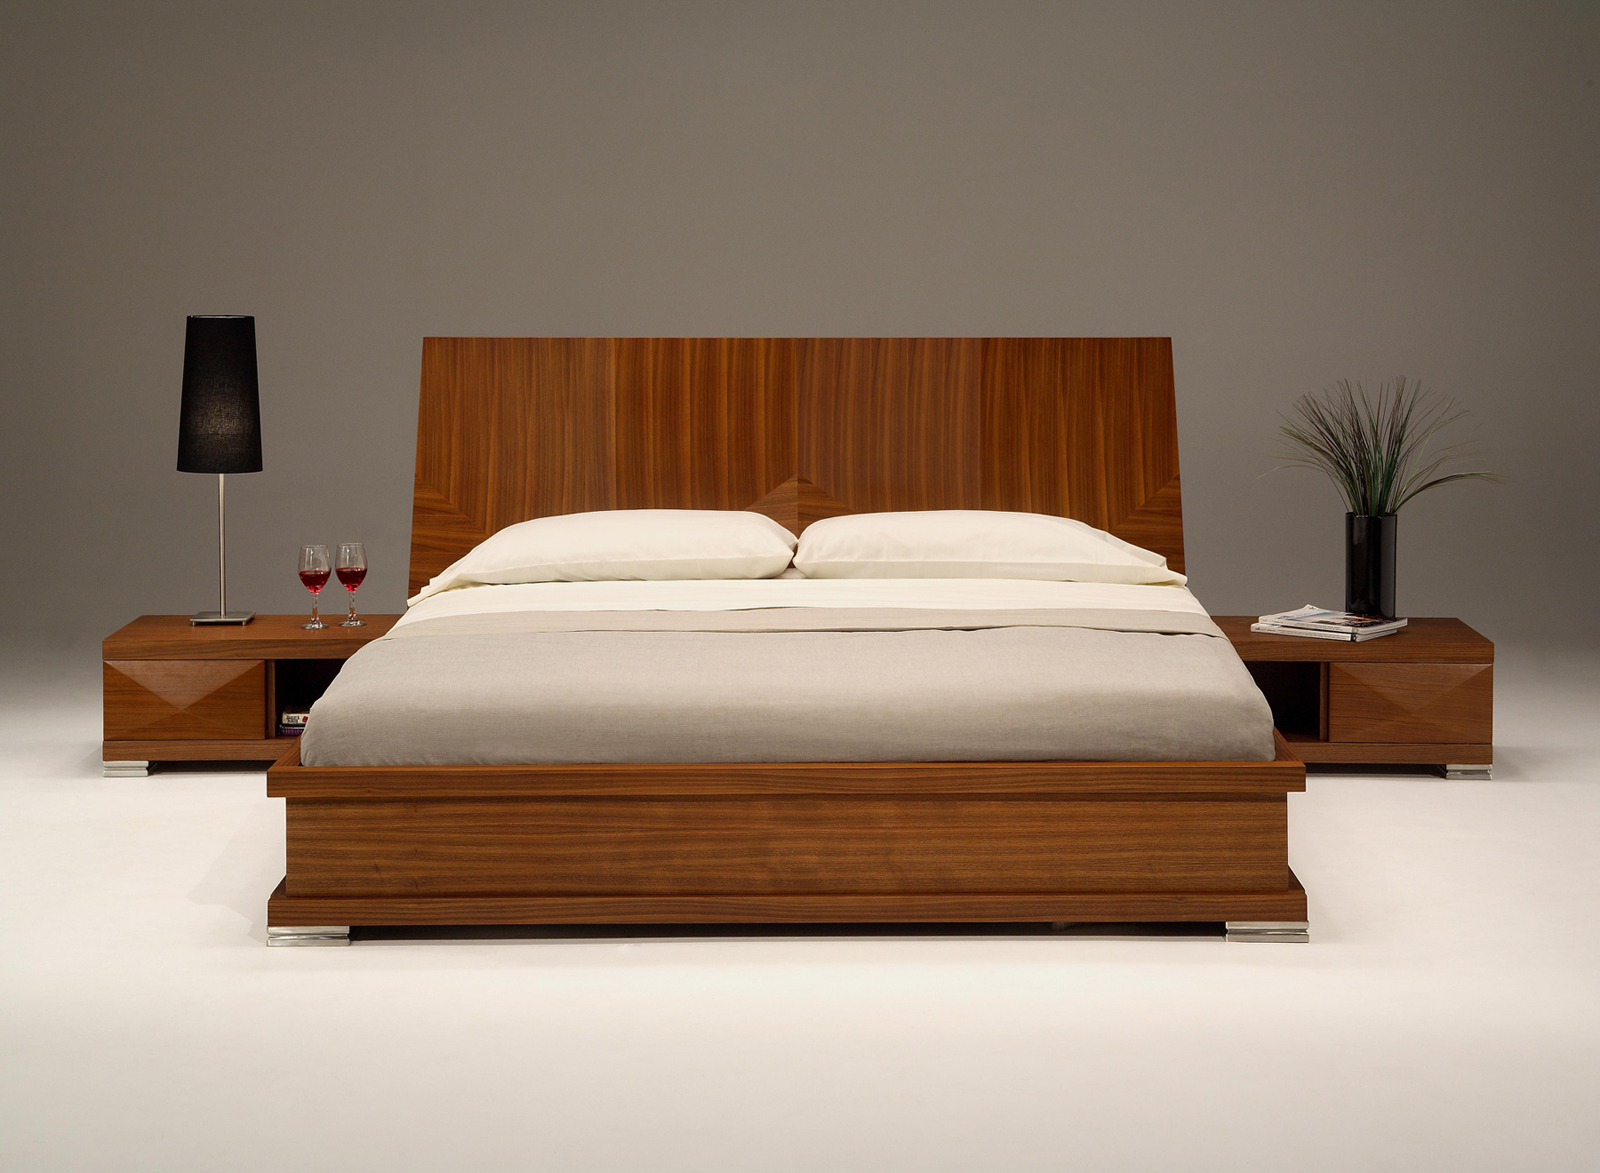 6 inspirational modern bedroom design ideas Wooden furniture design for bedroom